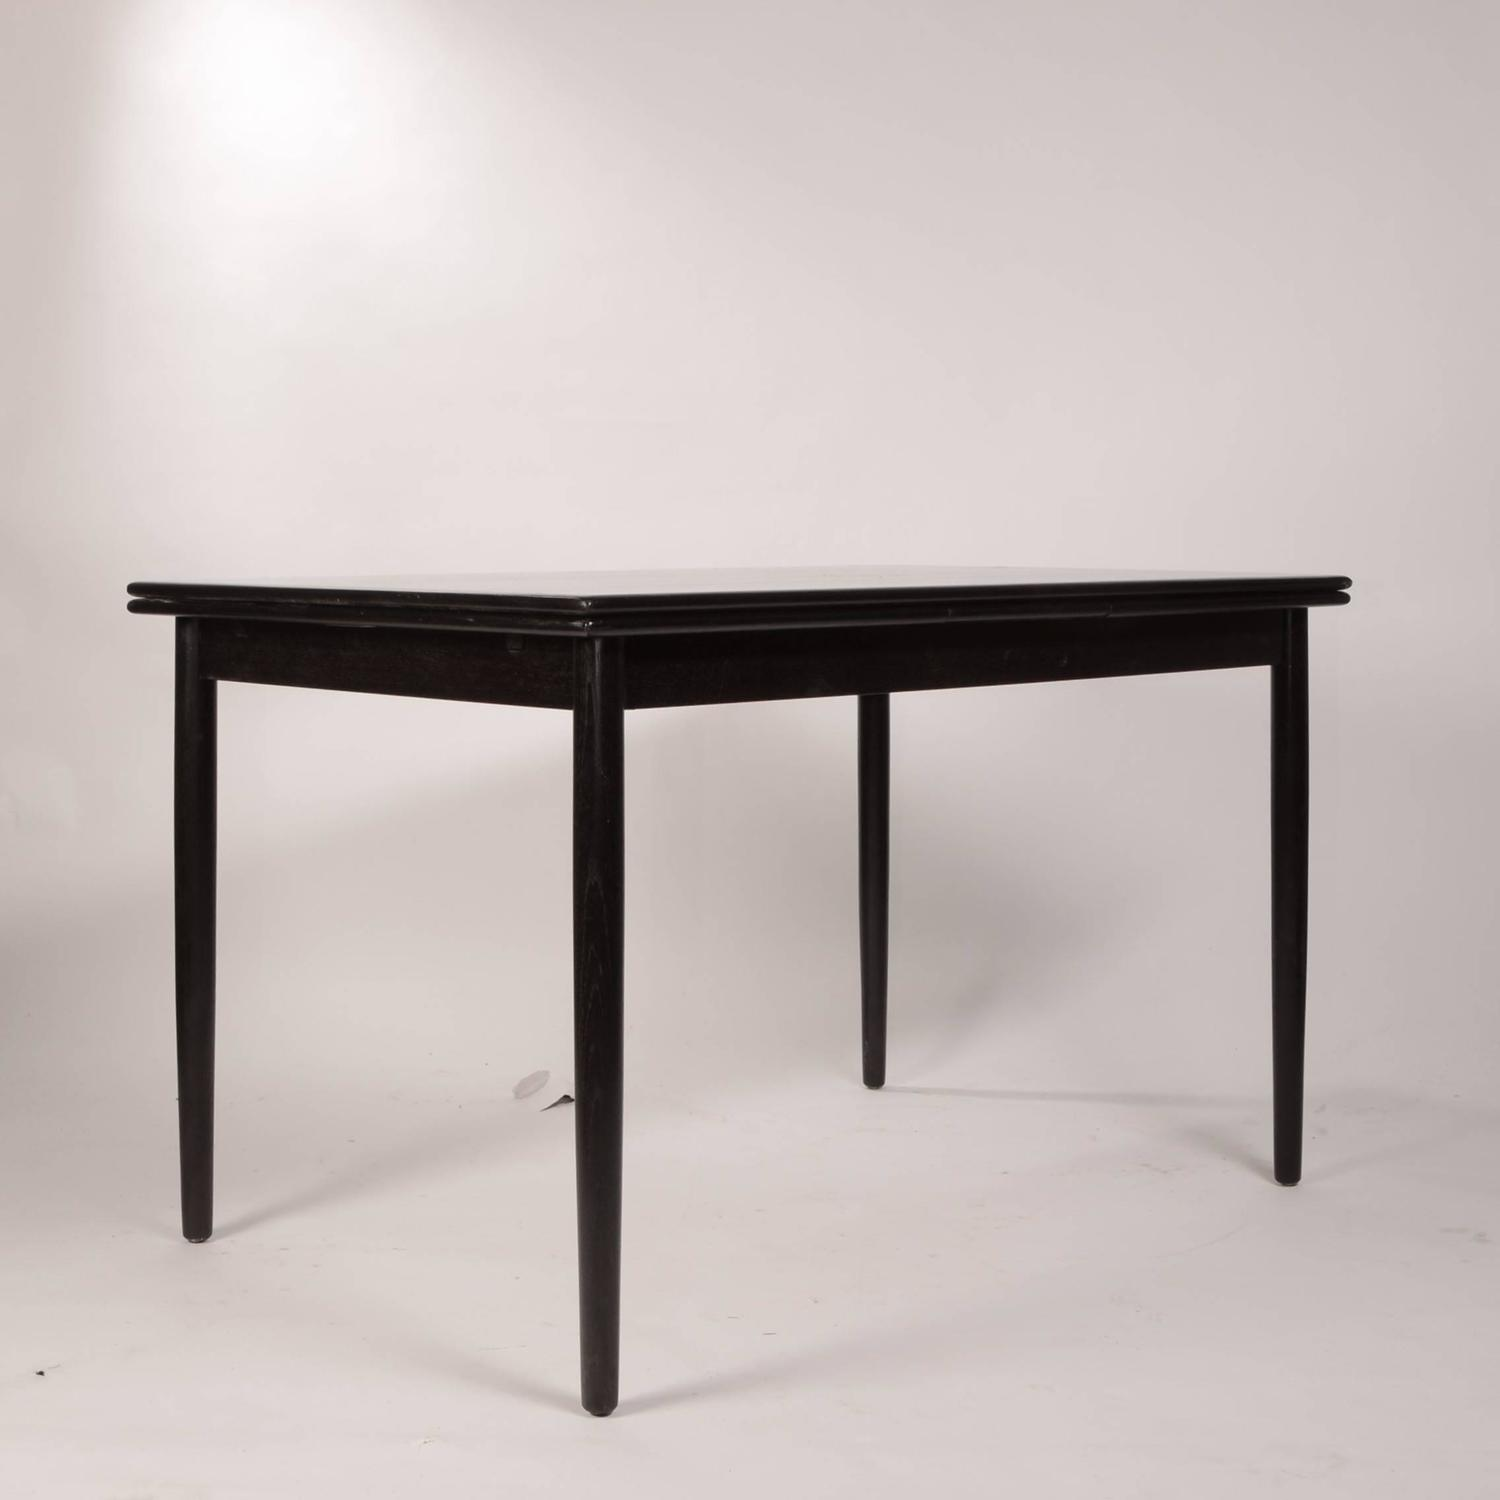 Danish modern draw leaf dining table in ebonized teak at for 3 leaf dining room tables